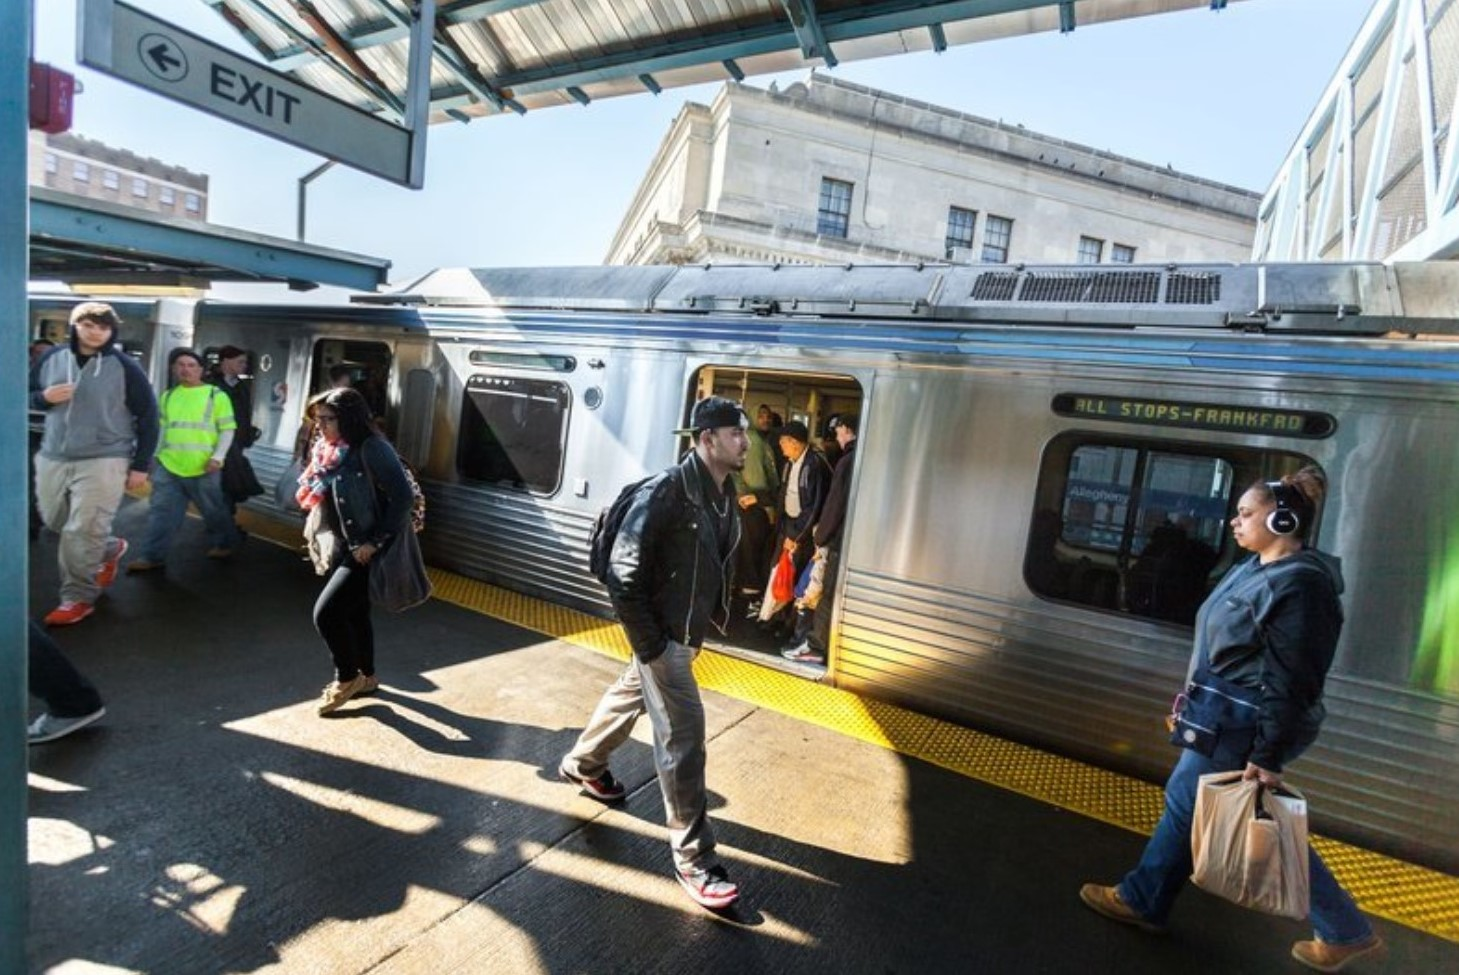 The El Brings Growth to Upper Darby